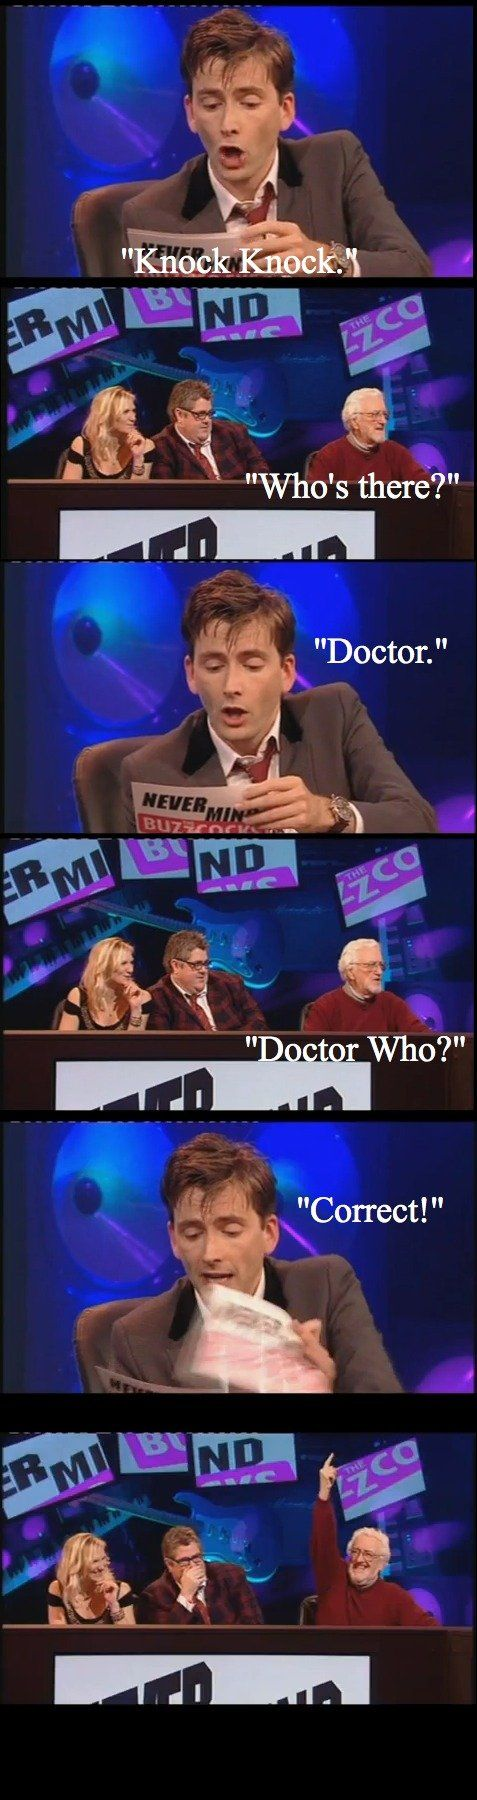 David Tennant tells a Knock Knock joke. I love that show 'Nevermind the Buzzcocks.' It was funny since Katherine Tate was a guest star and David was the host. Katherine didn't really know anything about Doctor Who either LOL.